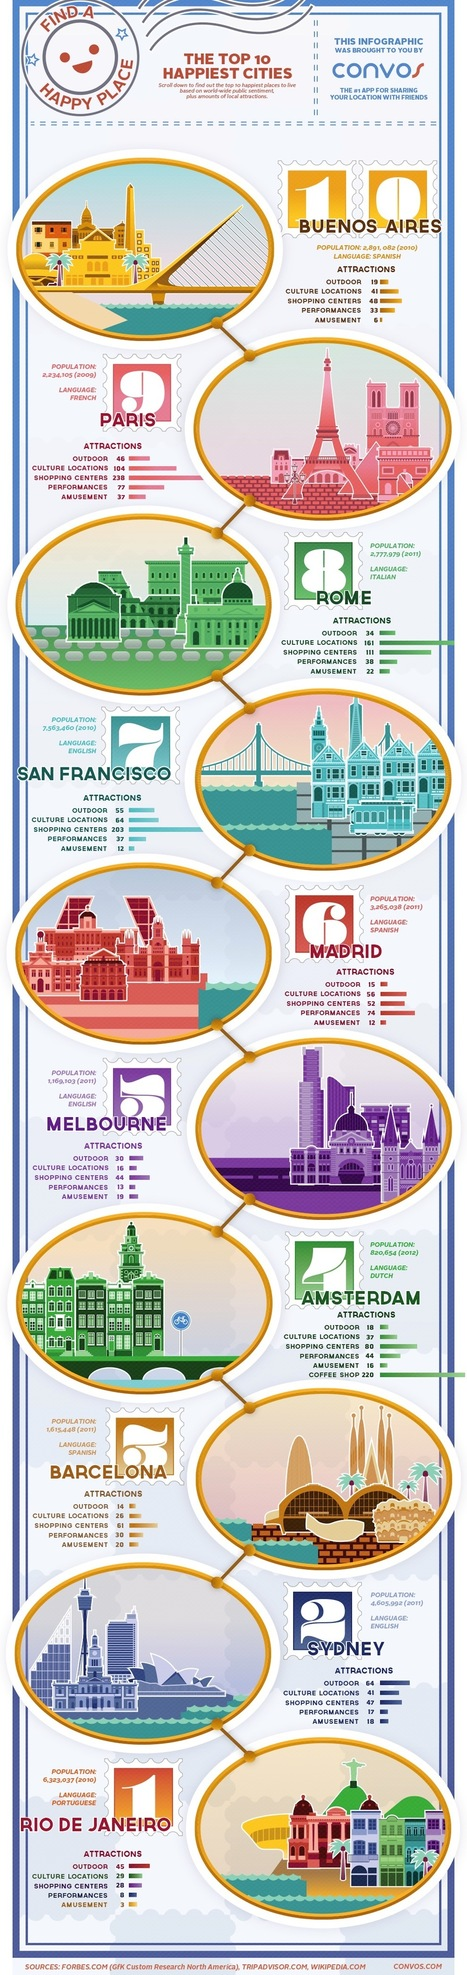 The Happiest Cities in the World [Infographic] | Science, Technology and Society | Scoop.it